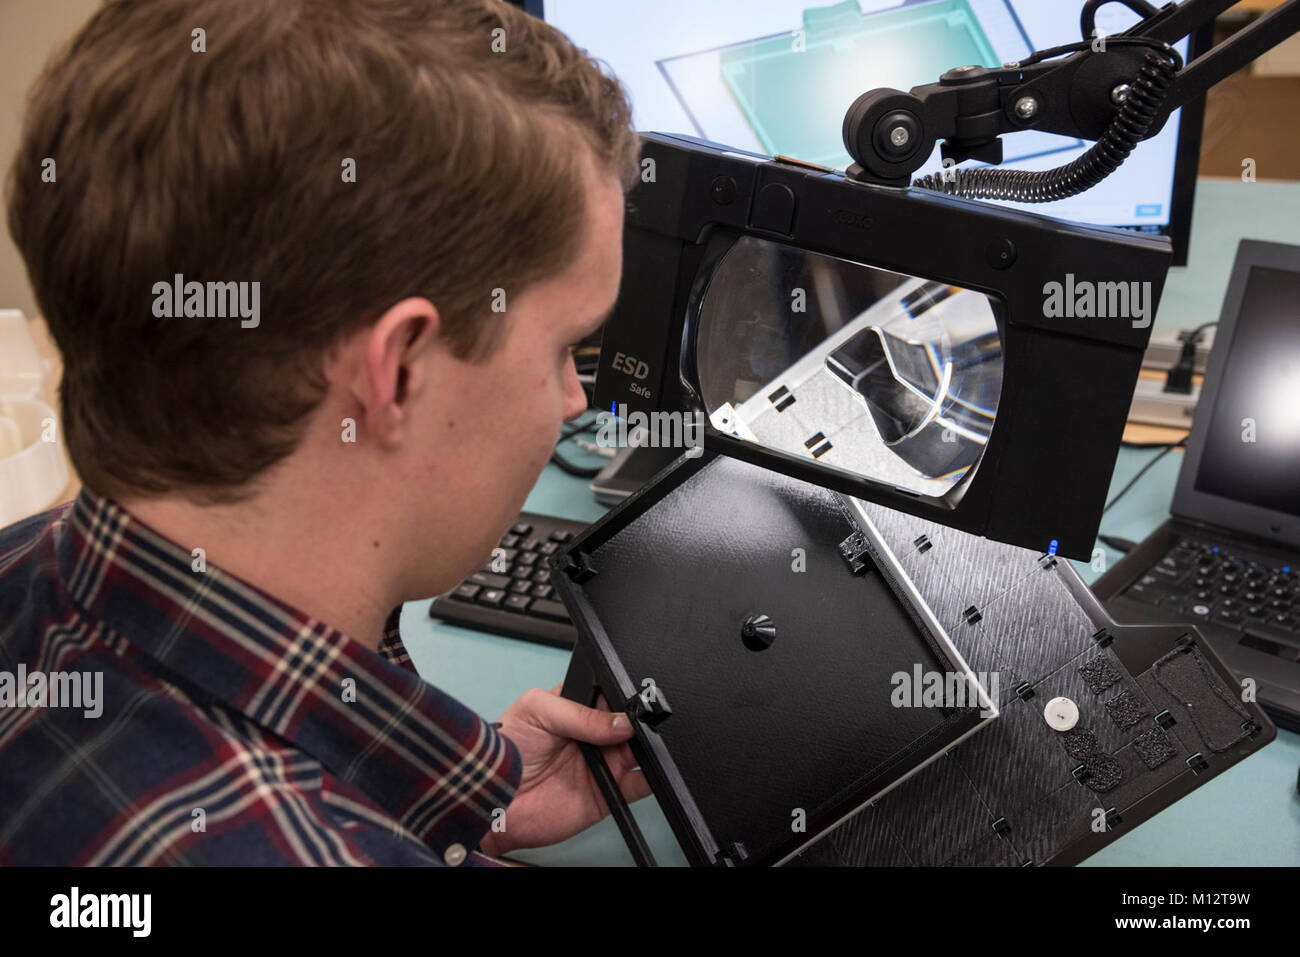 Replacement Parts Stock Photos & Replacement Parts Stock Images - Alamy